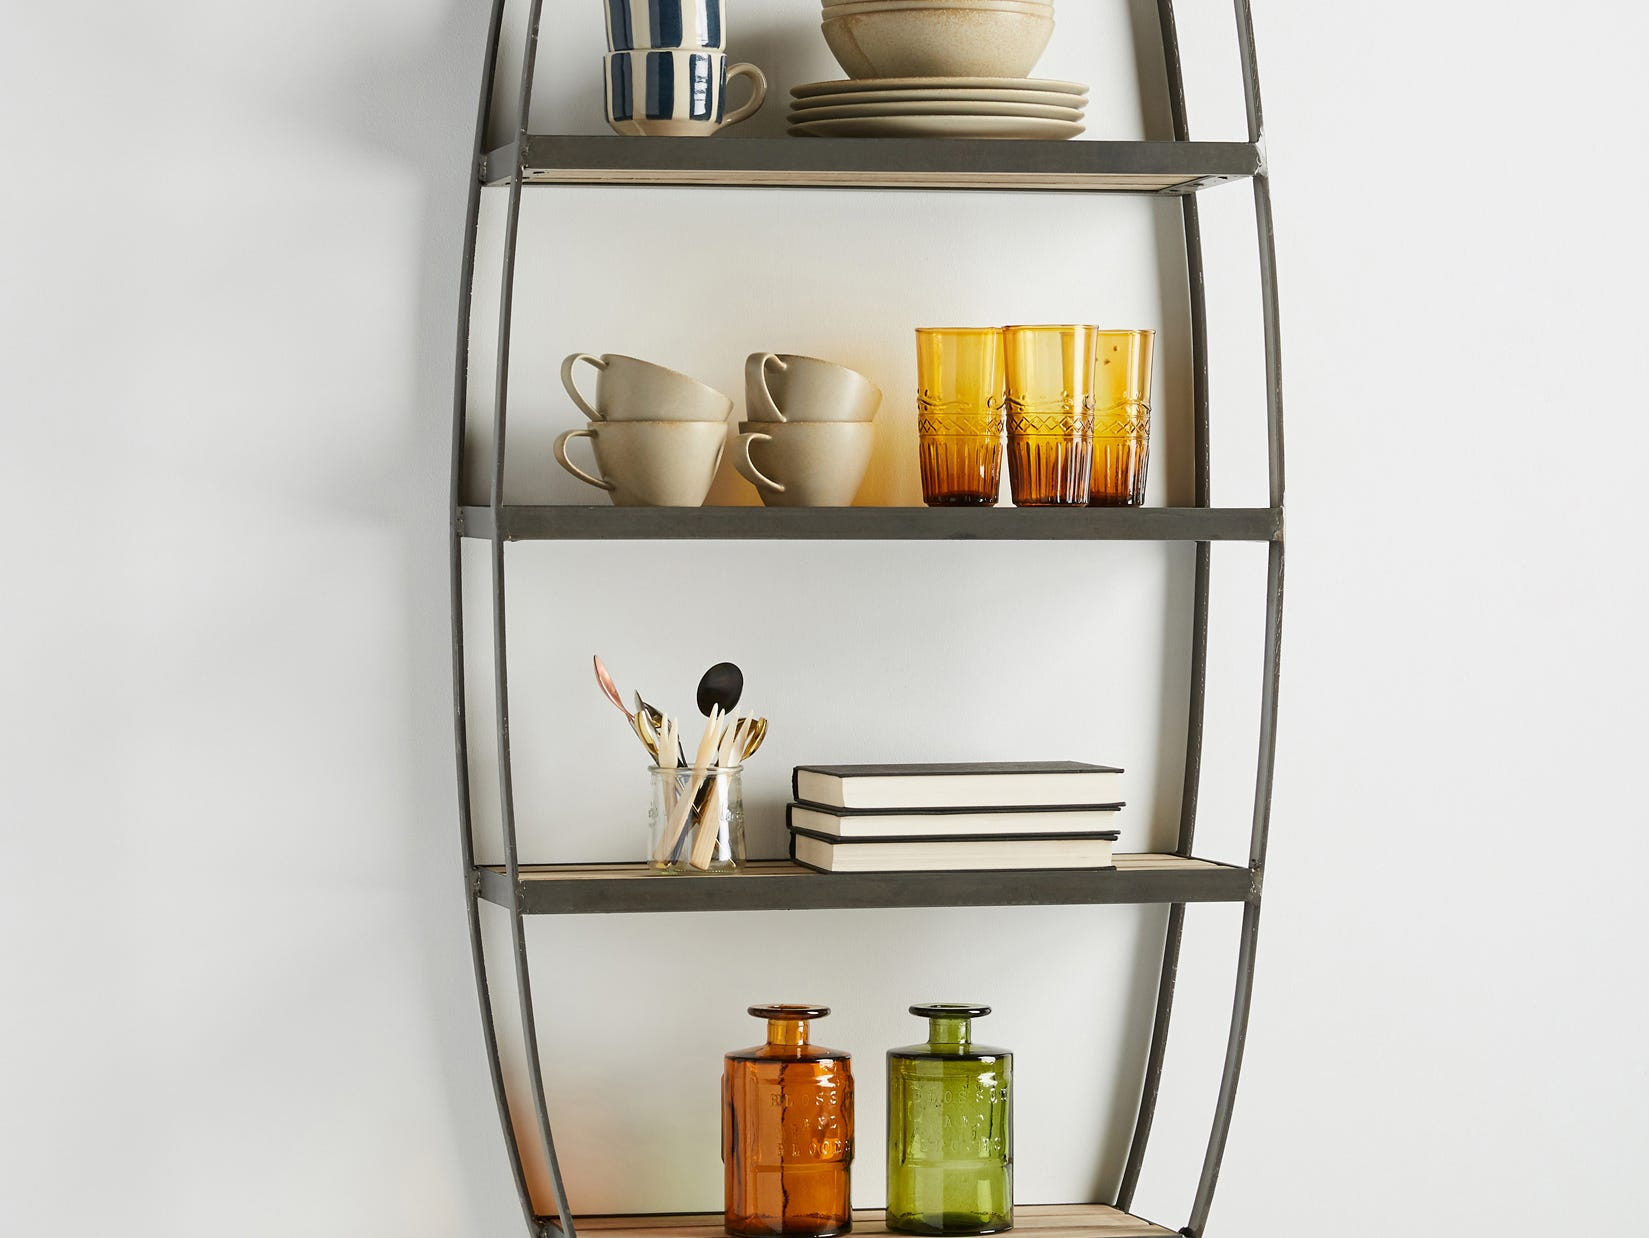 Reminiscent of curio cabinets, this paulownia wood wall-hung shelving is held in an exaggerated oval frame hand-crafted from raw iron. Design your own cabinet of curiosities on five tiers. The piece is 60 3/4 inches tall and 22 1/4 inches wide, with an 8-inch projection.